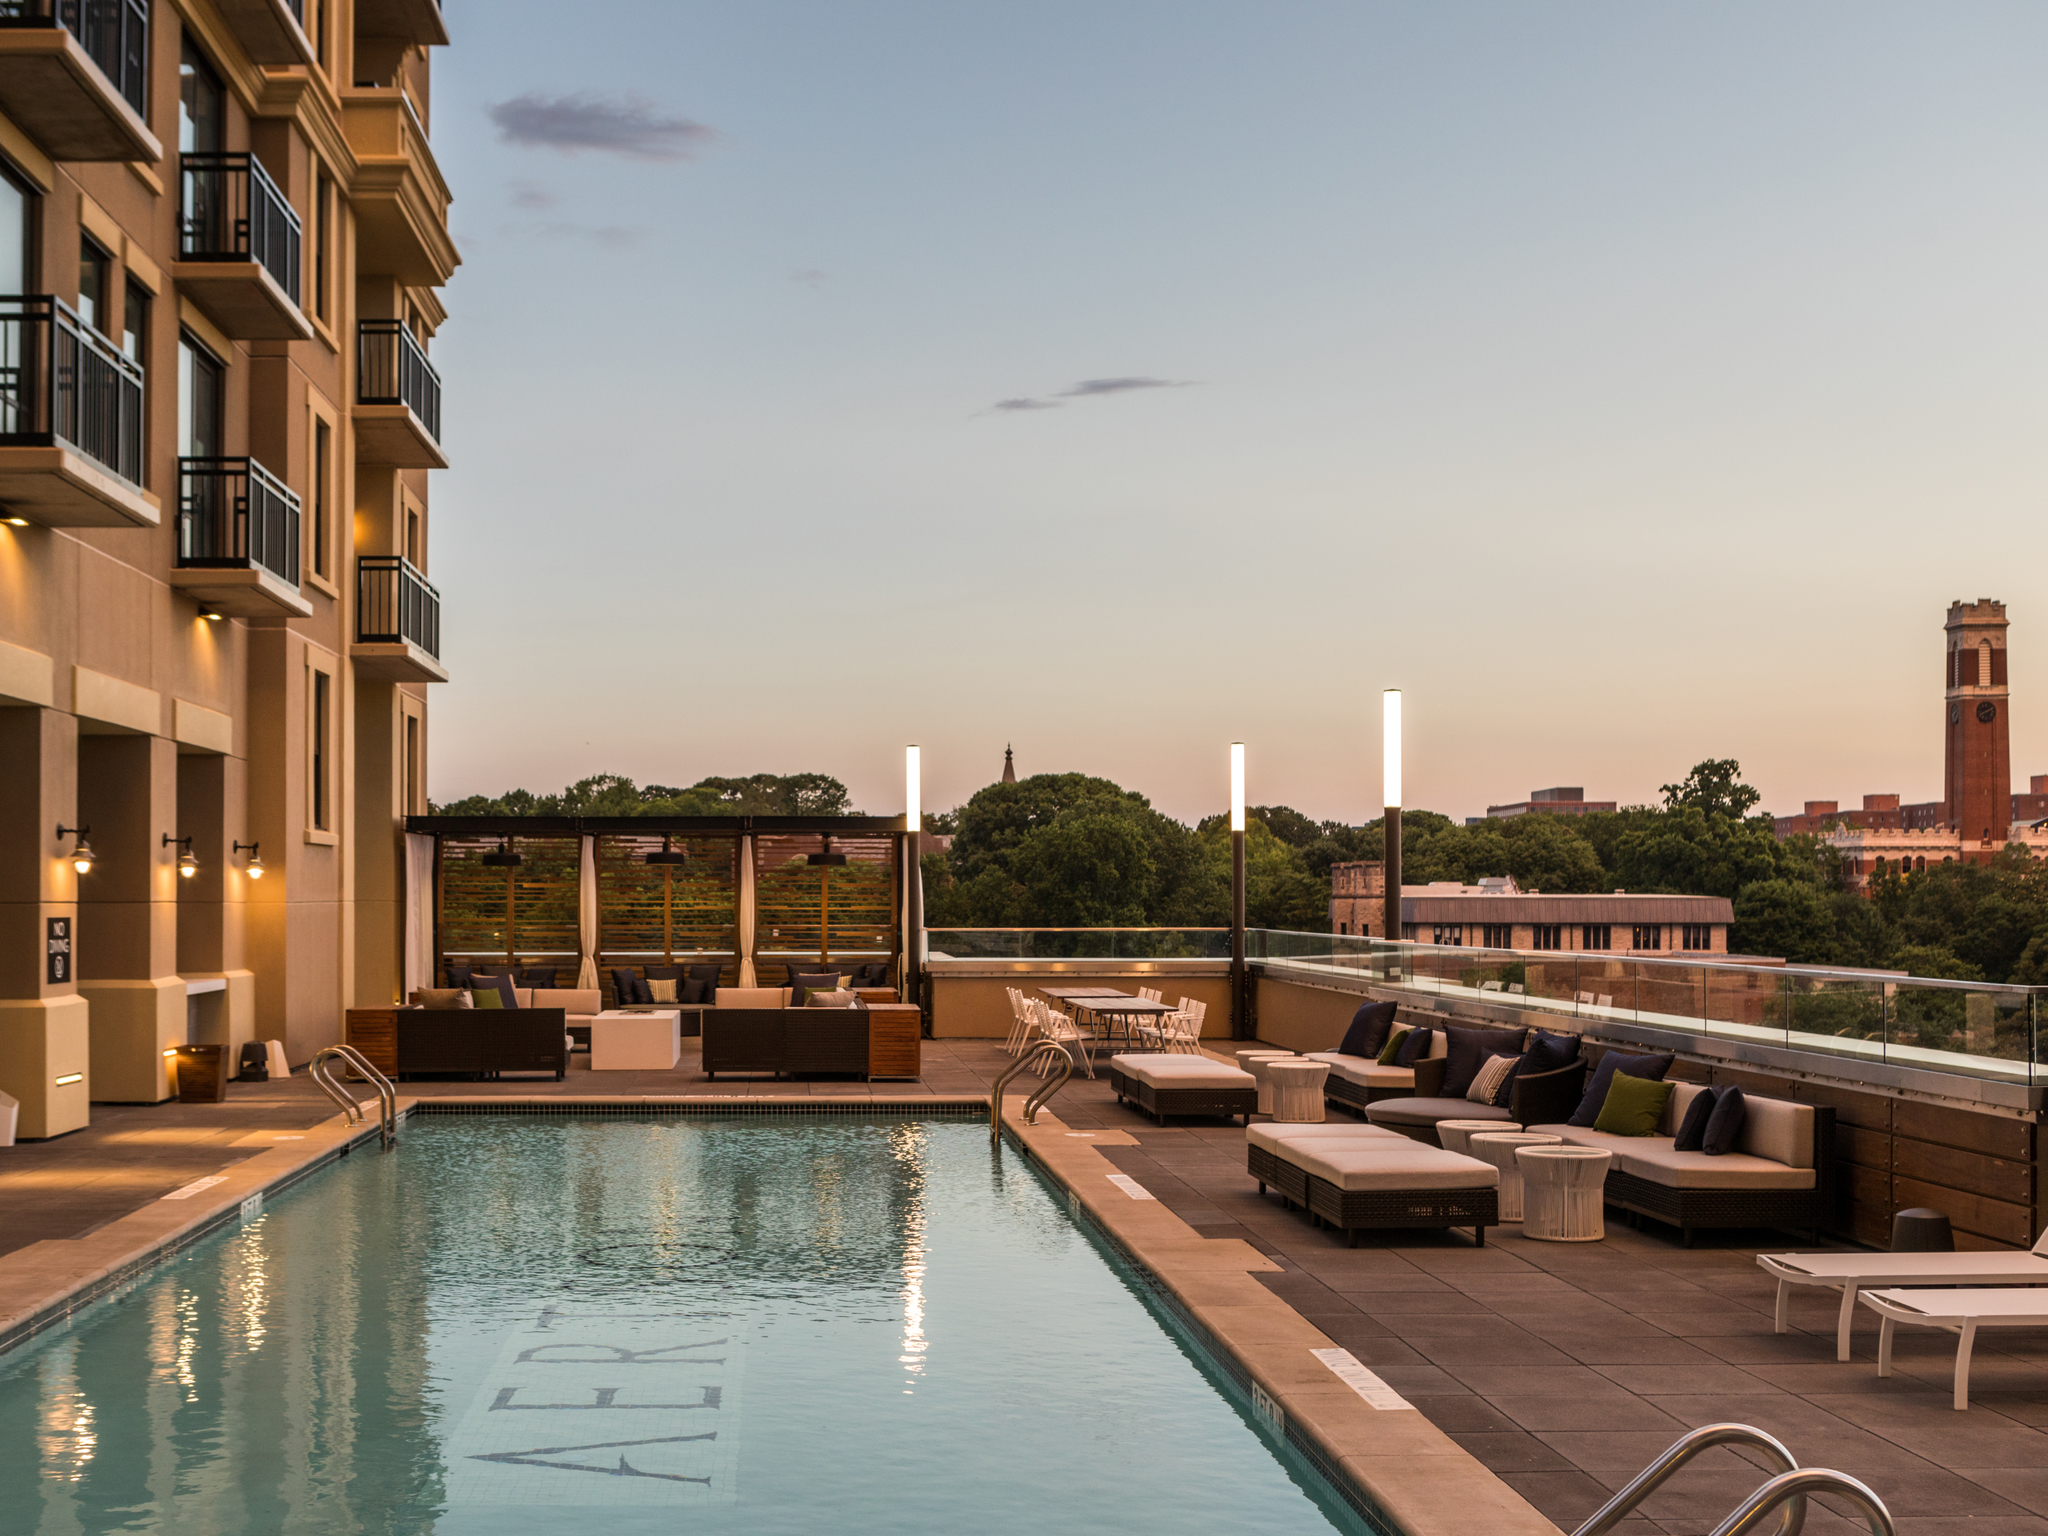 The Kimpton Aertson rooftop pool has glass partitions to maximize views and minimize wind.